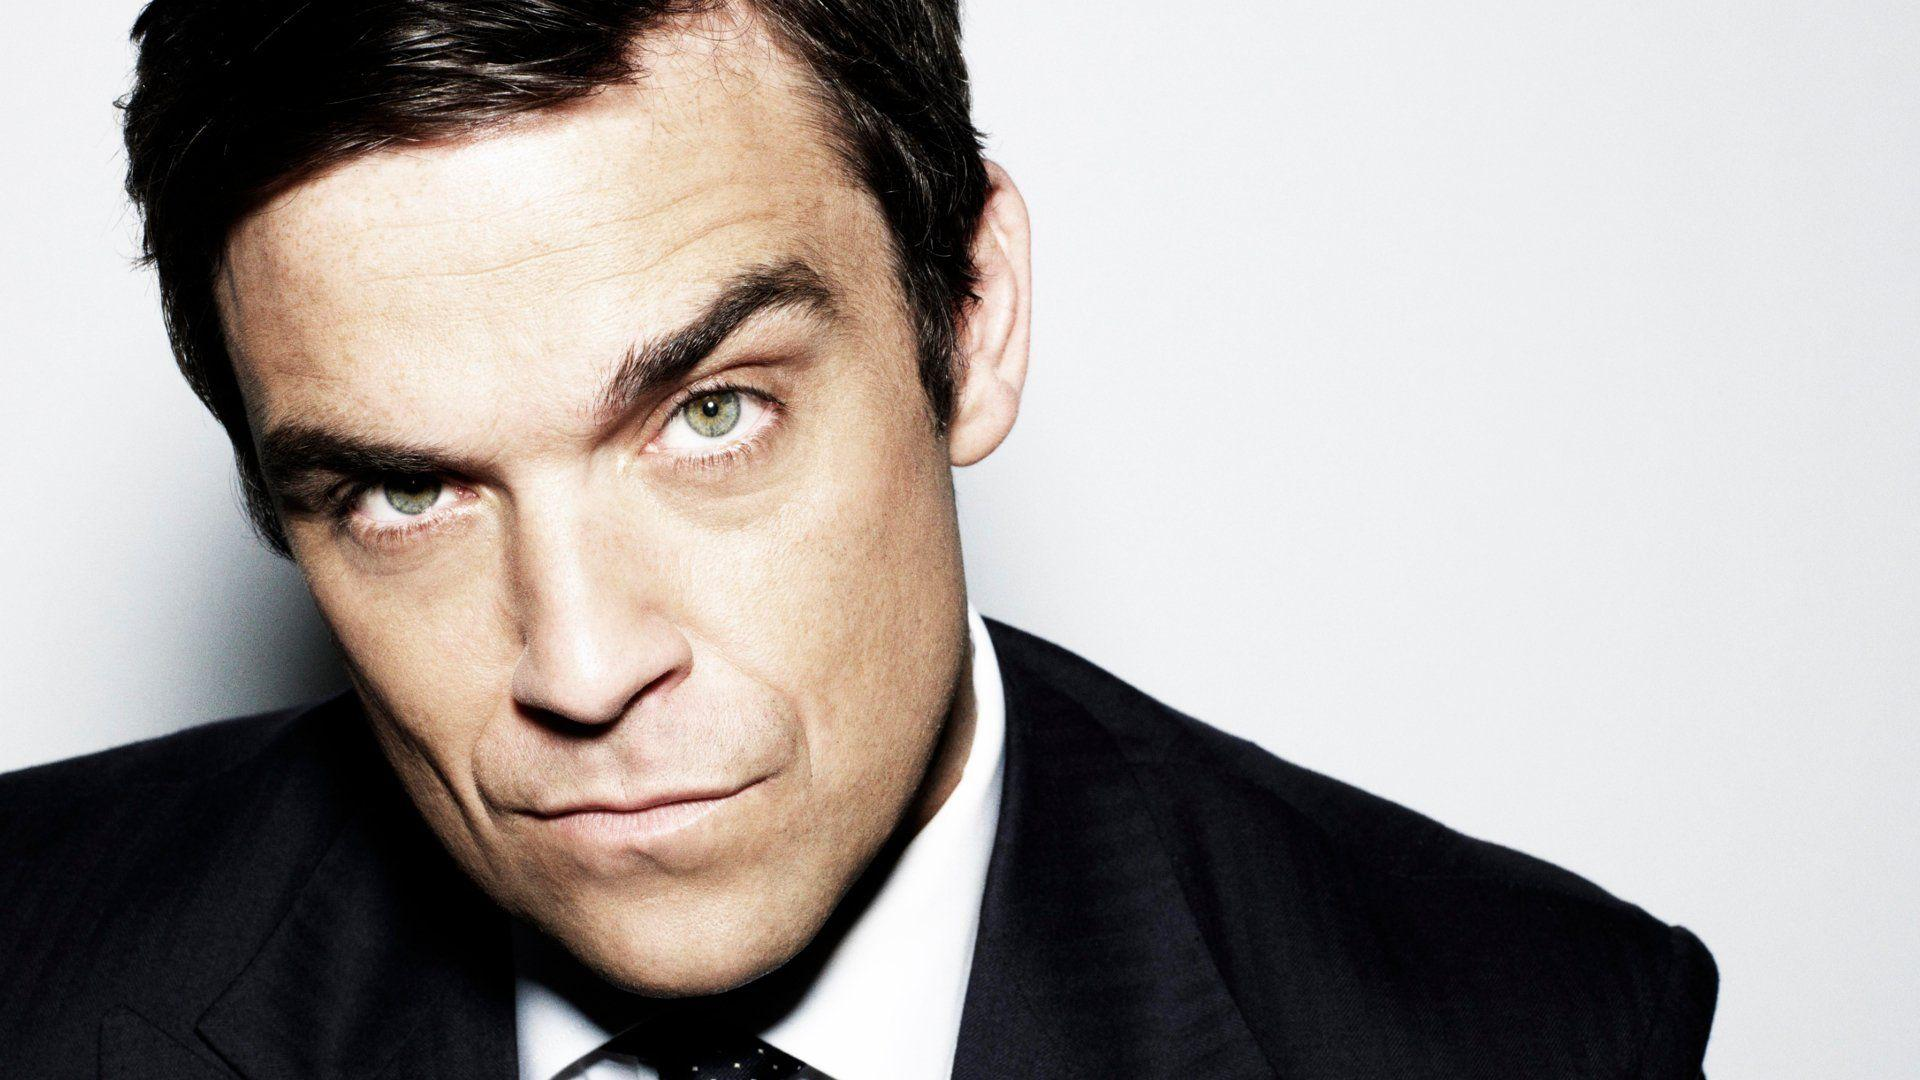 Robbie Williams Full HD Wallpaper and Background Image | 1920x1080 ...